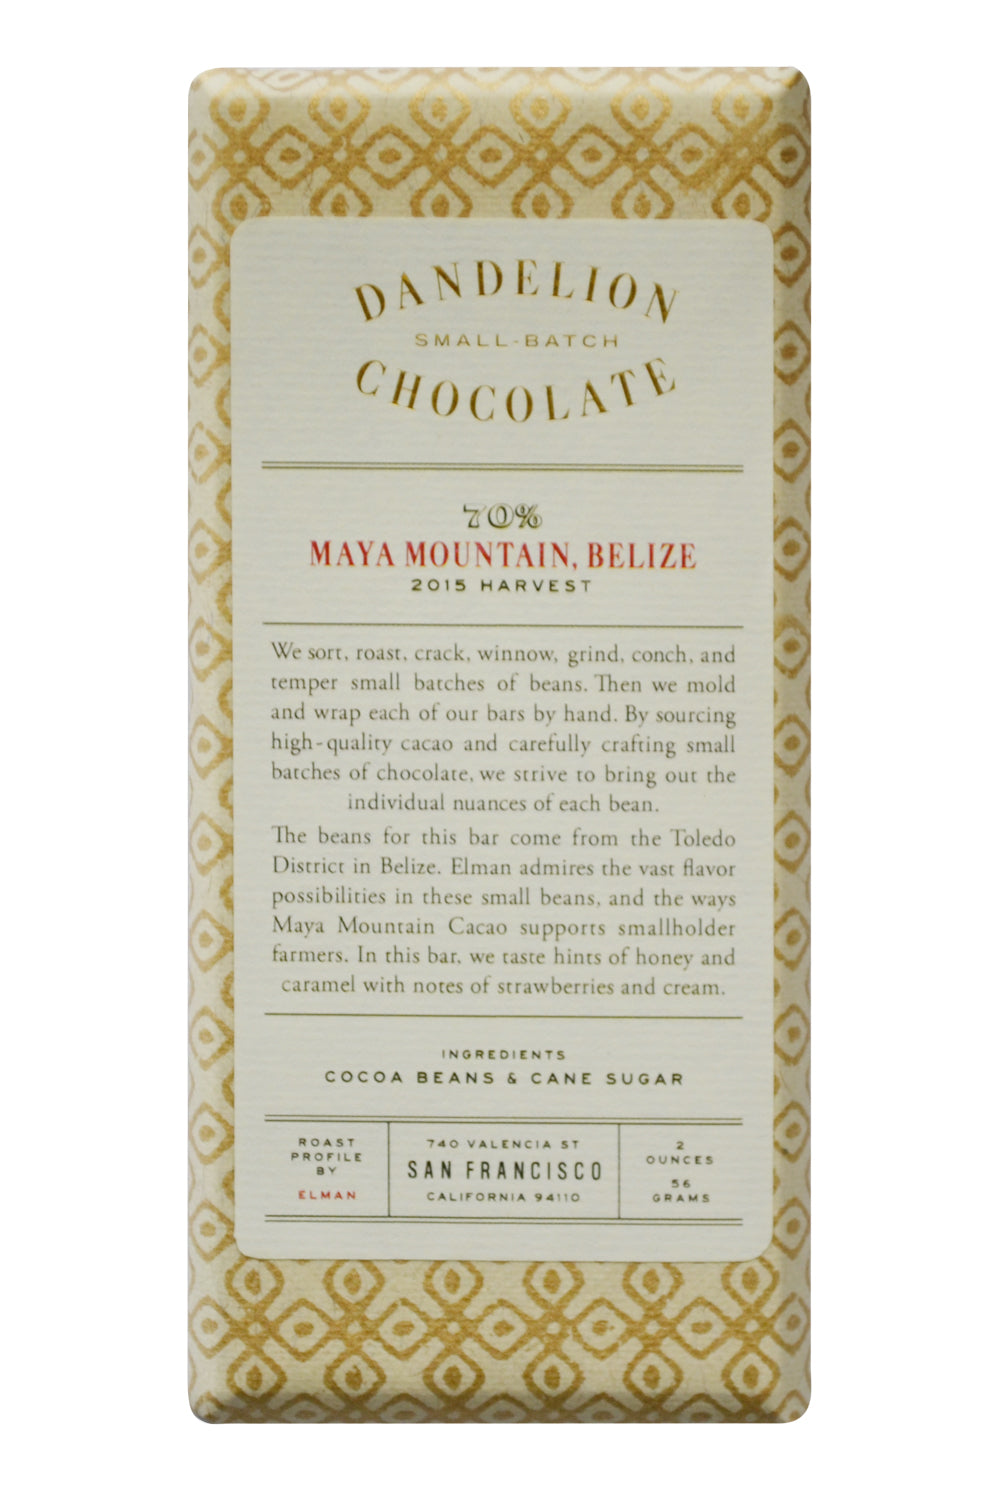 Dandelion Dark Chocolate - Maya Mountain